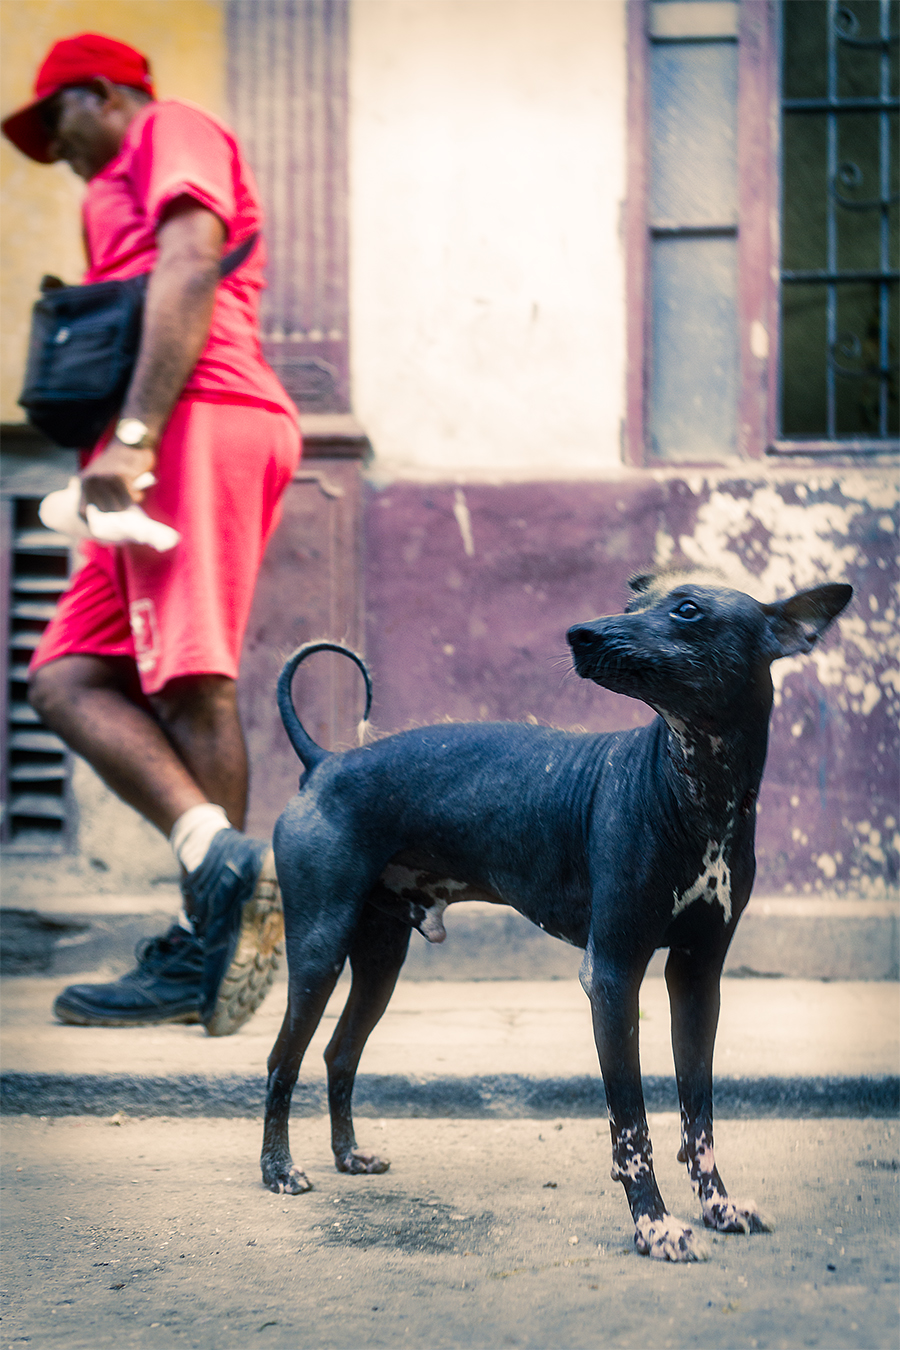 Dog in a street inHavana, Cuba